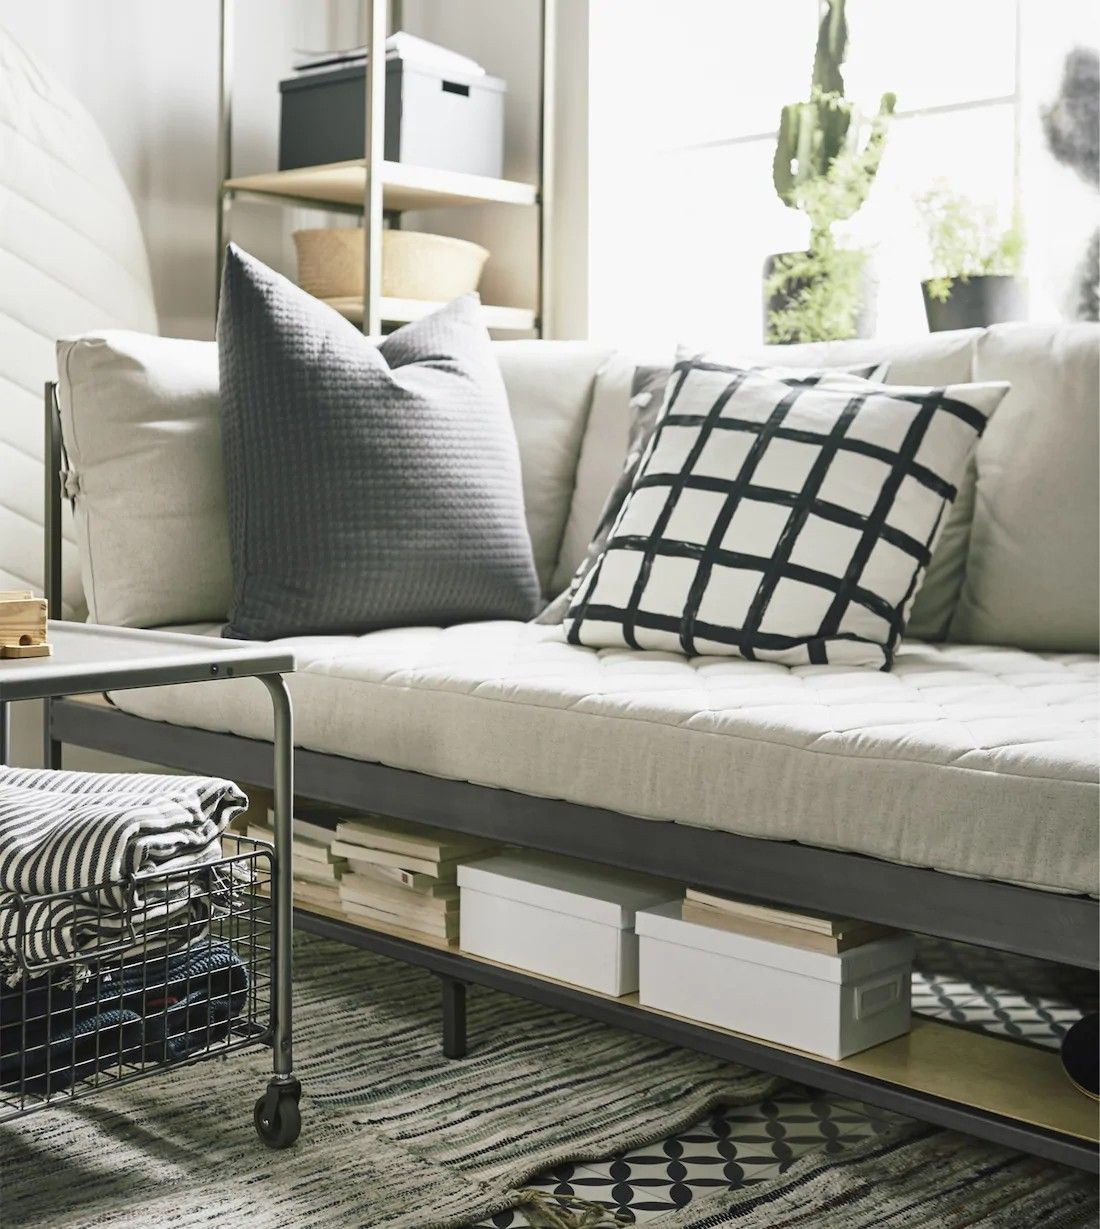 Pin by tanja tofil on home in pinterest space saving